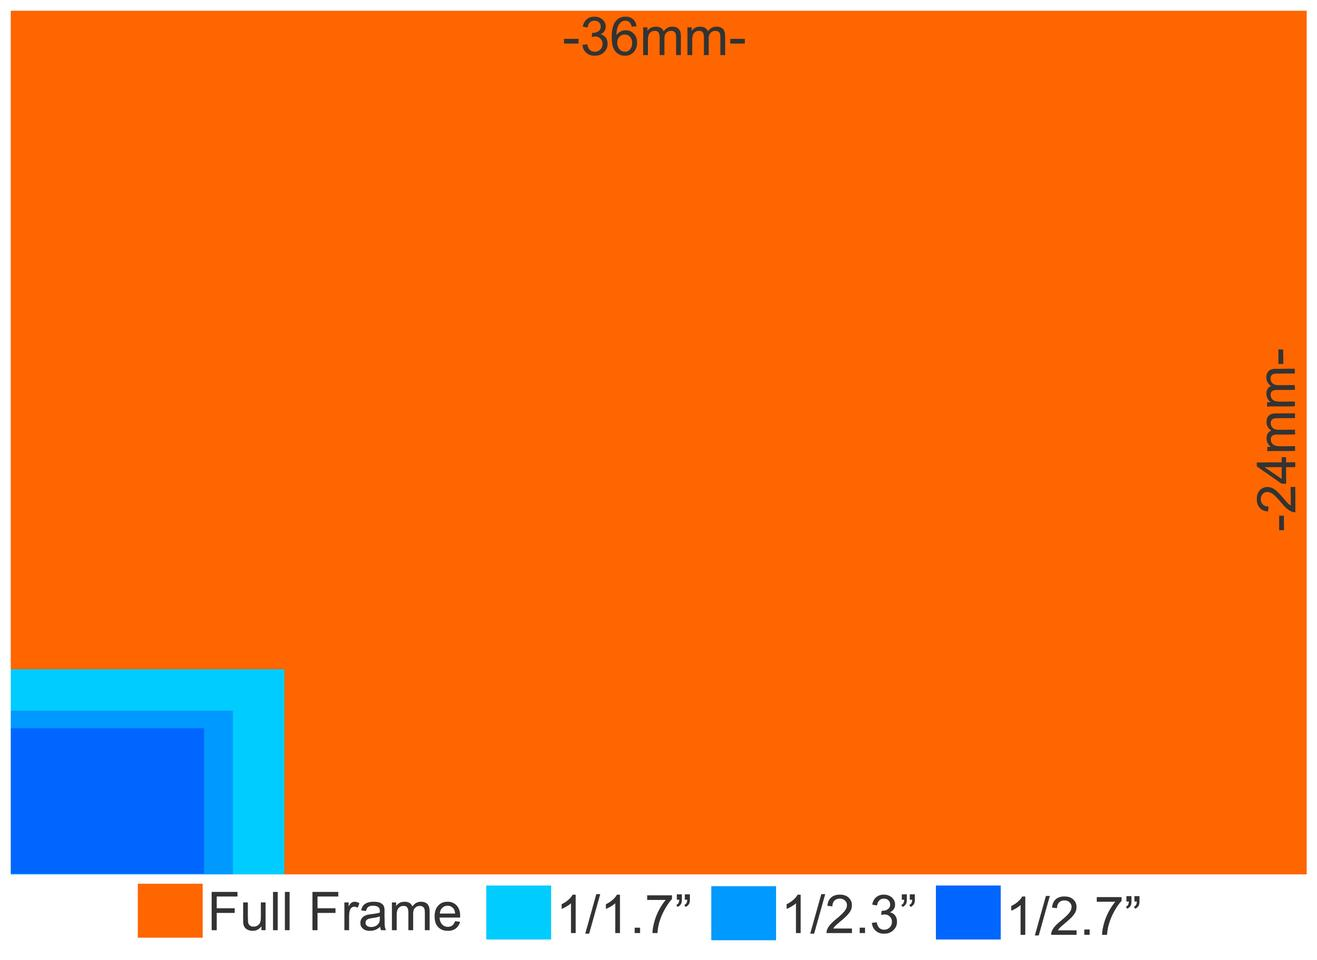 Camera Sensor Size Why Does It Matter And Exactly How Big Are They